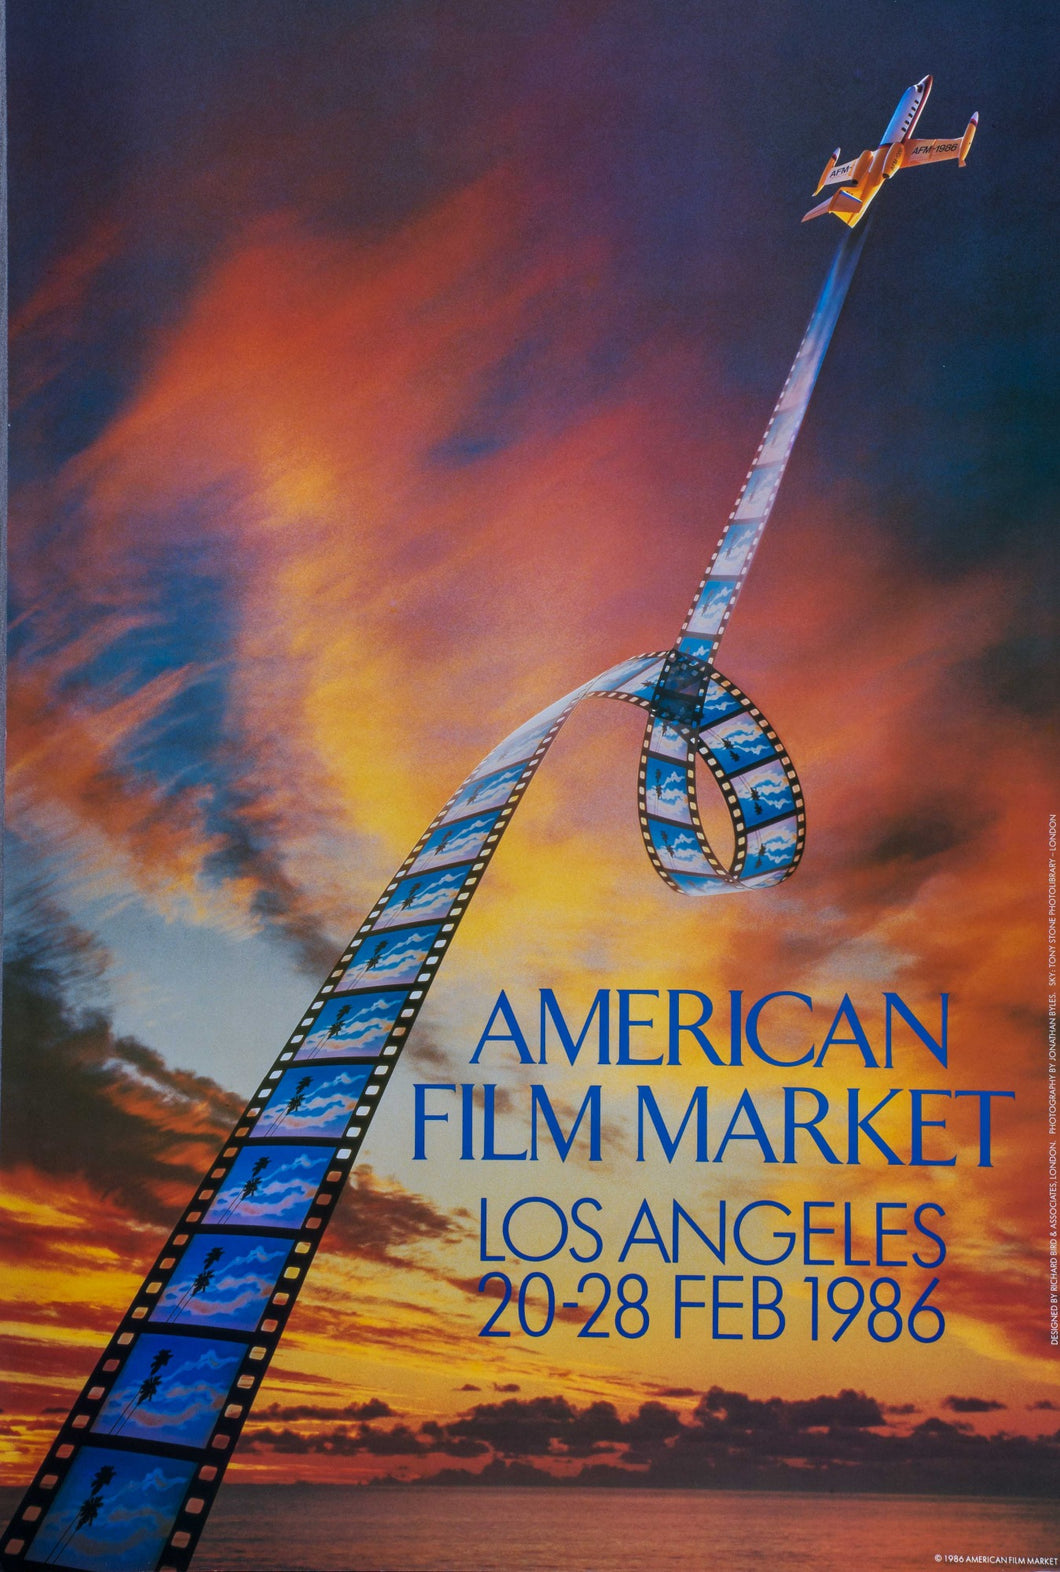 Air plane Flying in sunset pulling long string of film American Film Market poster